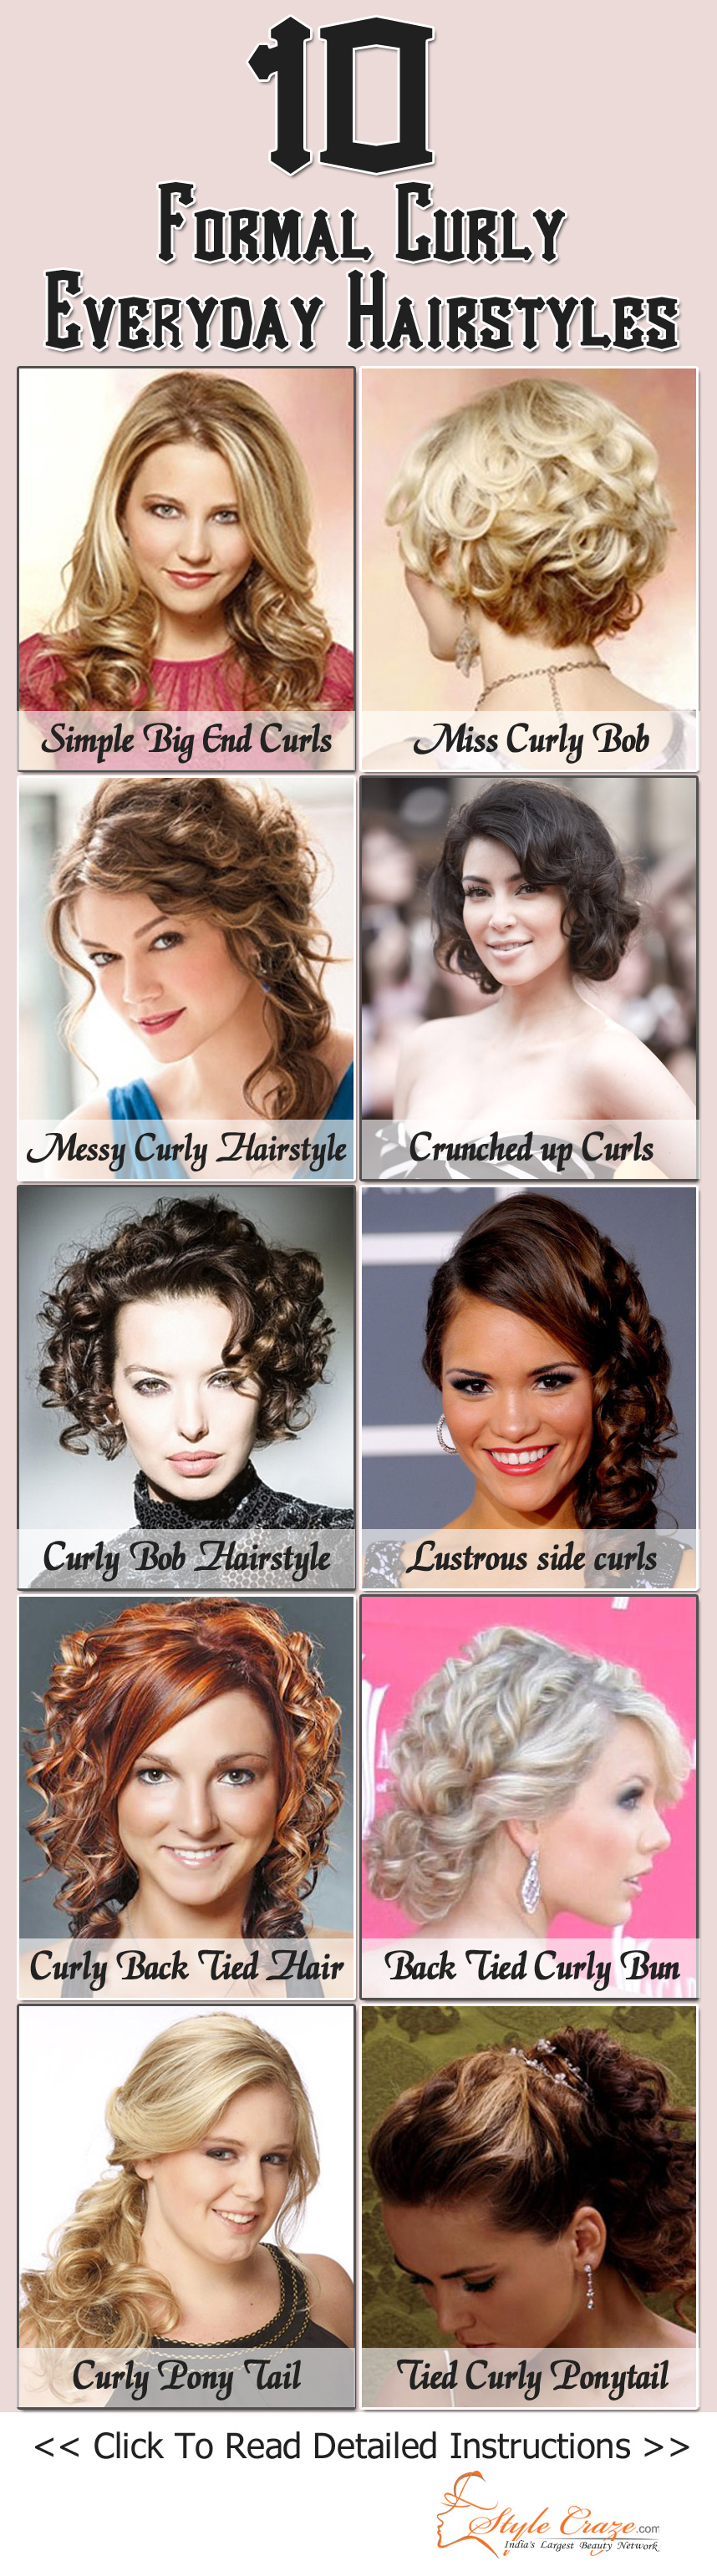 formal curly everyday hairstyles curly hair pinterest